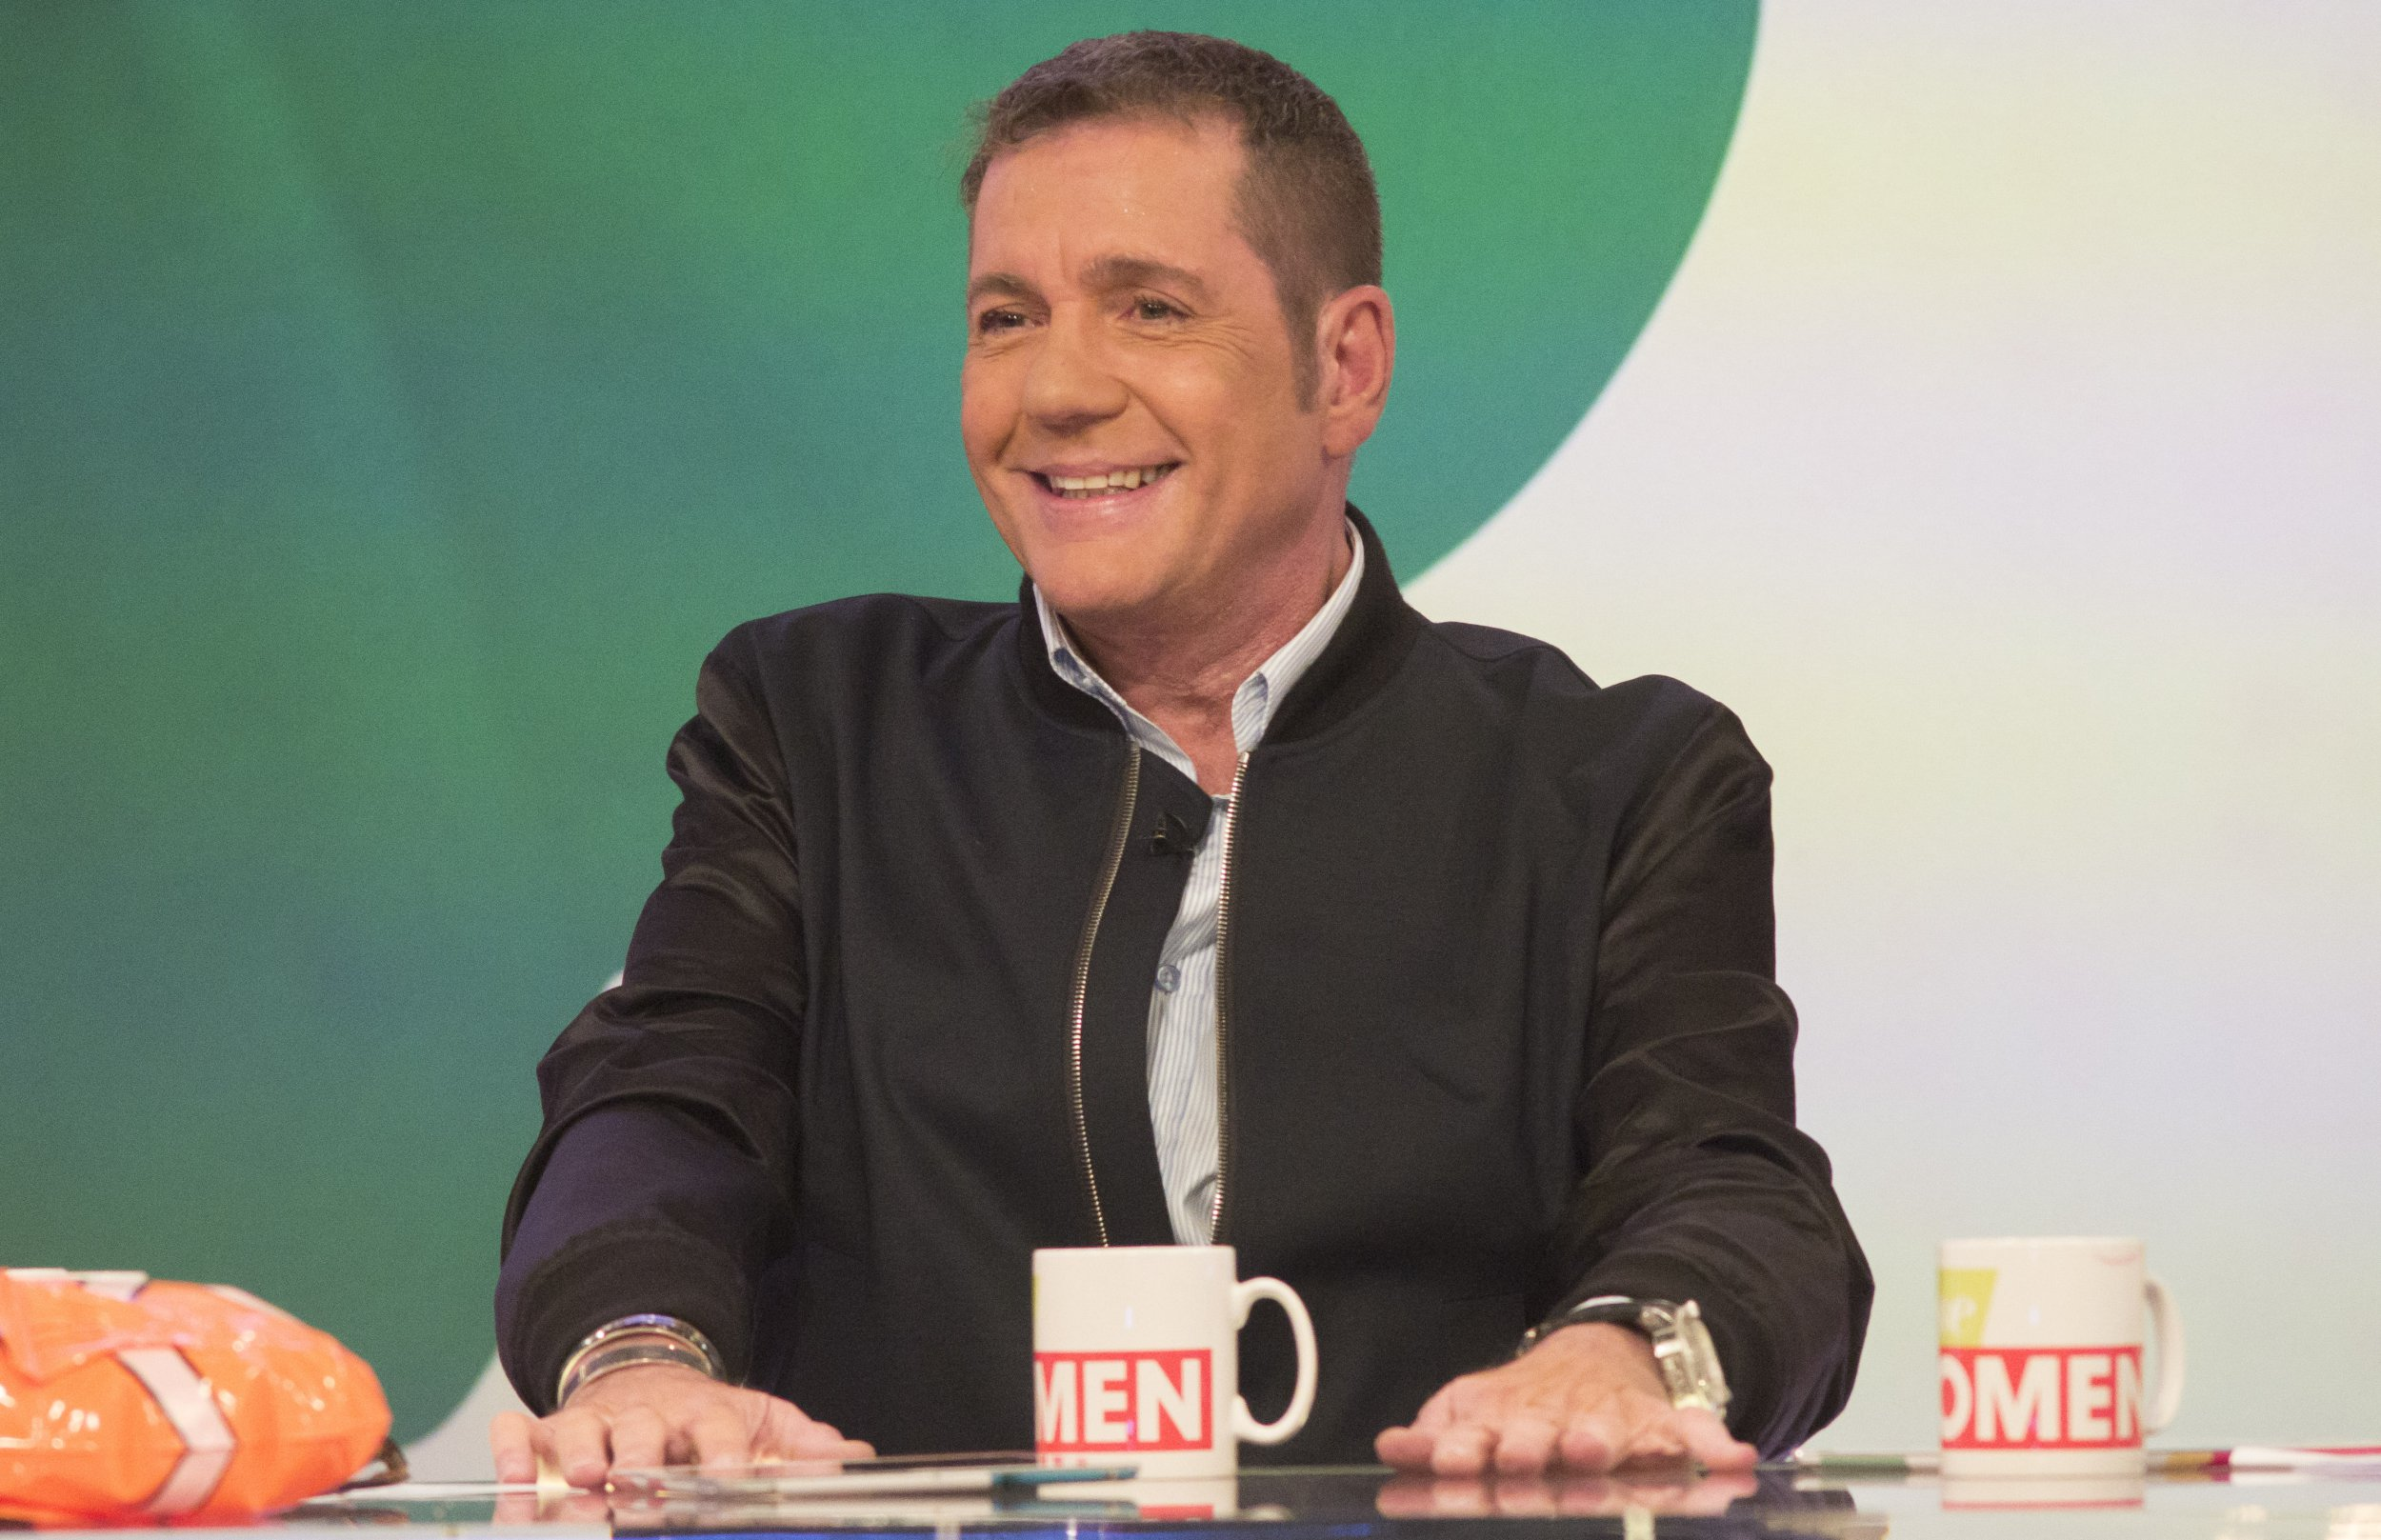 EDITORIAL USE ONLY. NO MERCHANDISING Mandatory Credit: Photo by S Meddle/ITV/REX/Shutterstock (5734157bw) Dale Winton 'Loose Women' TV show, London, UK - 17 Jun 2016